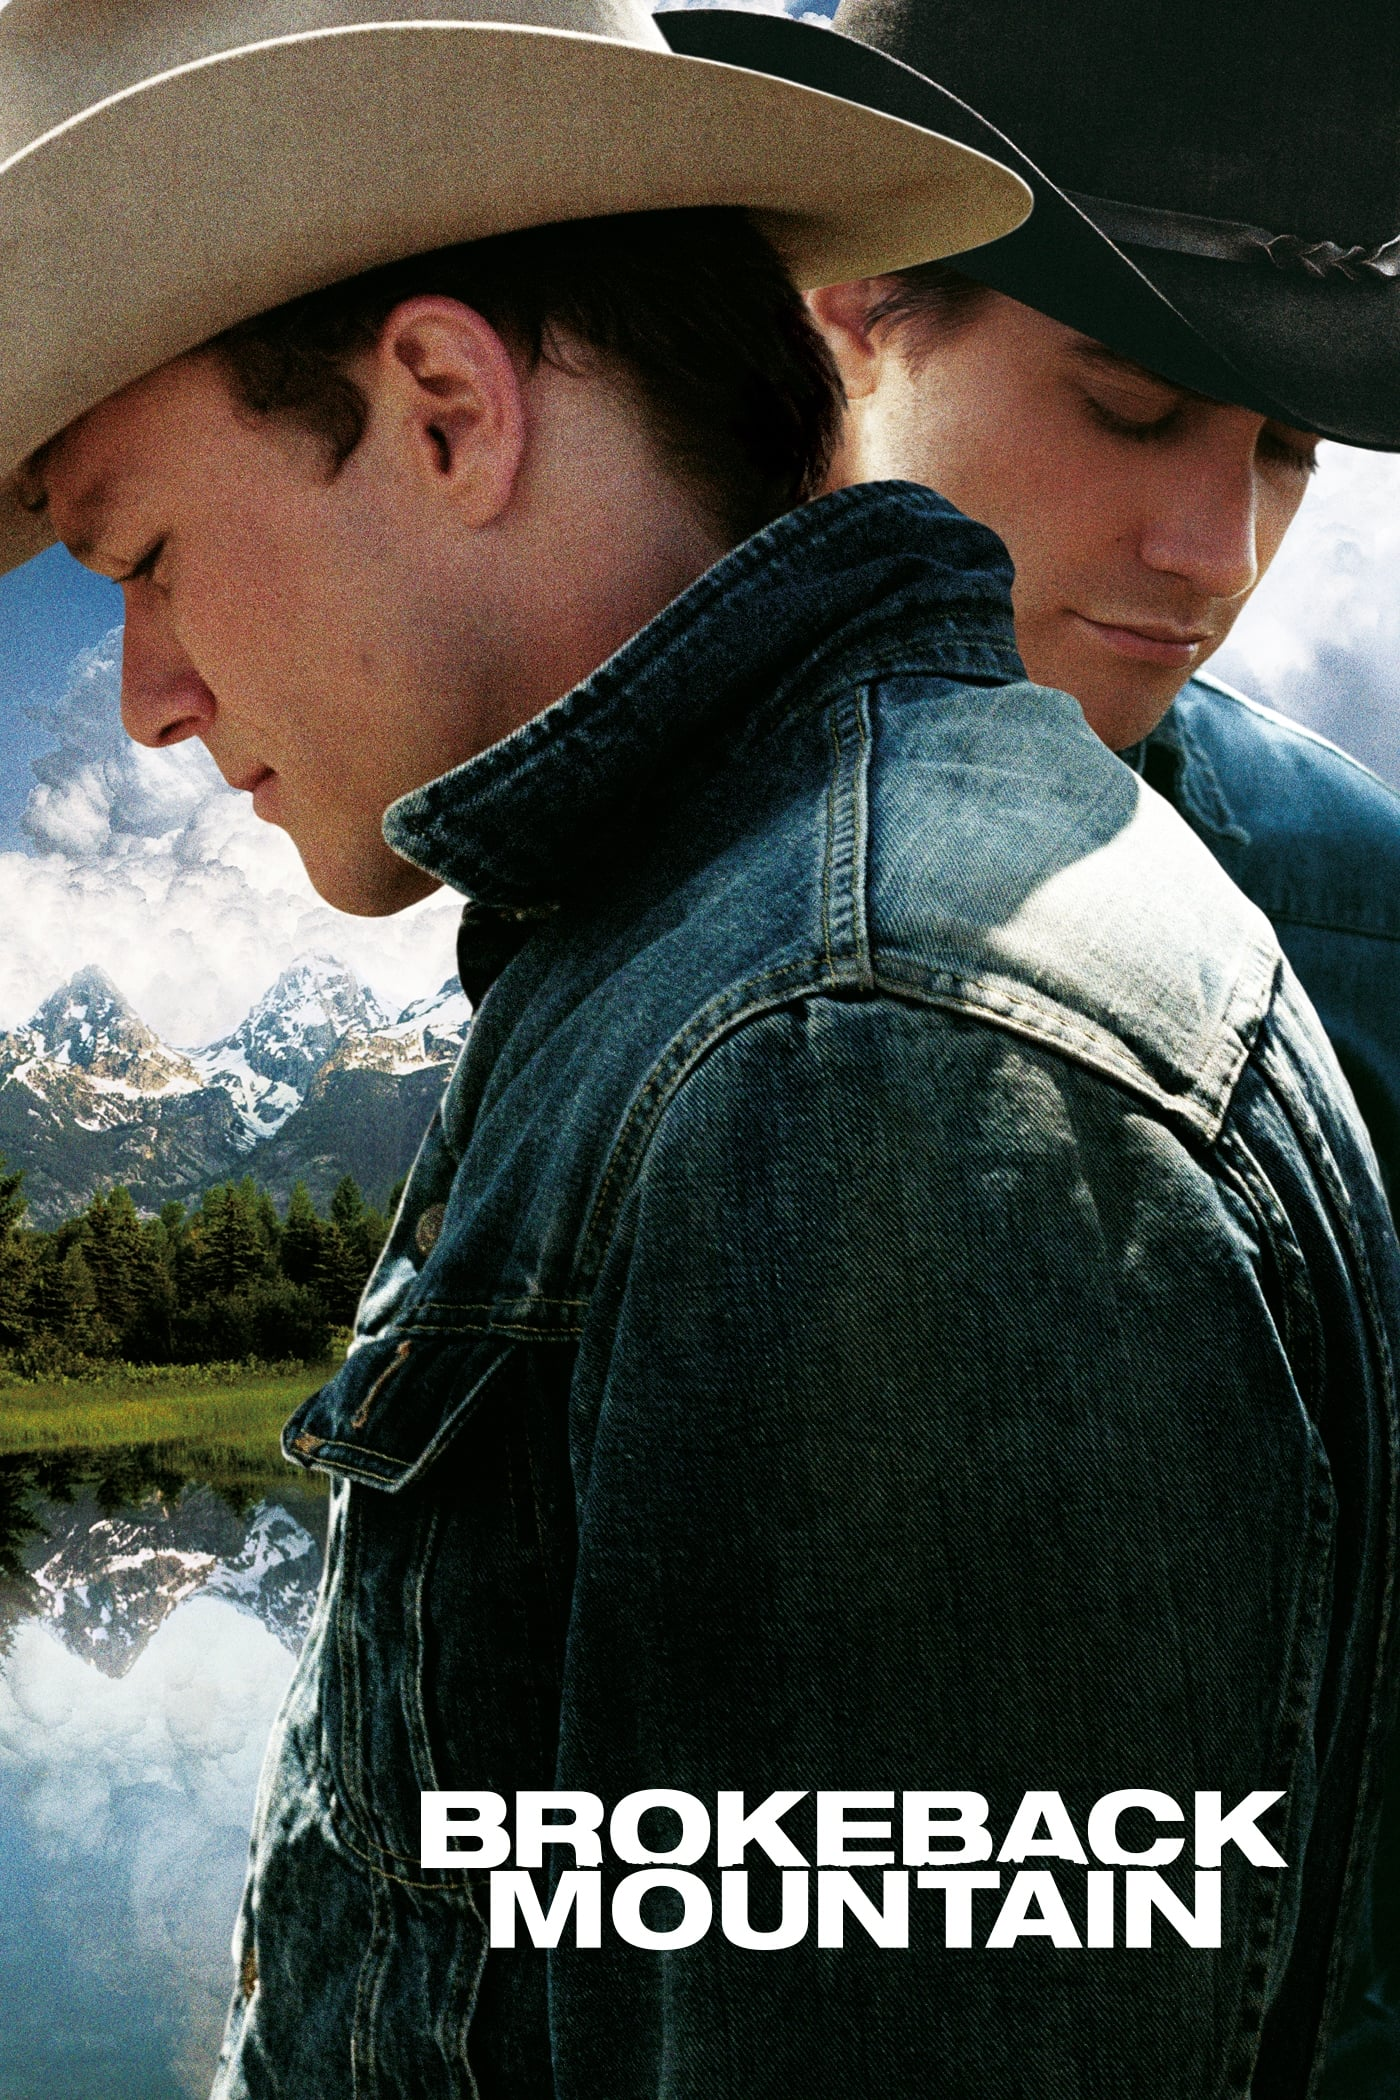 brokeback mountain wester or romance essay Breathtaking cinematography and astonishing feats of skiing come together in this visual essay on climate change and the family comedies | quirky romance.